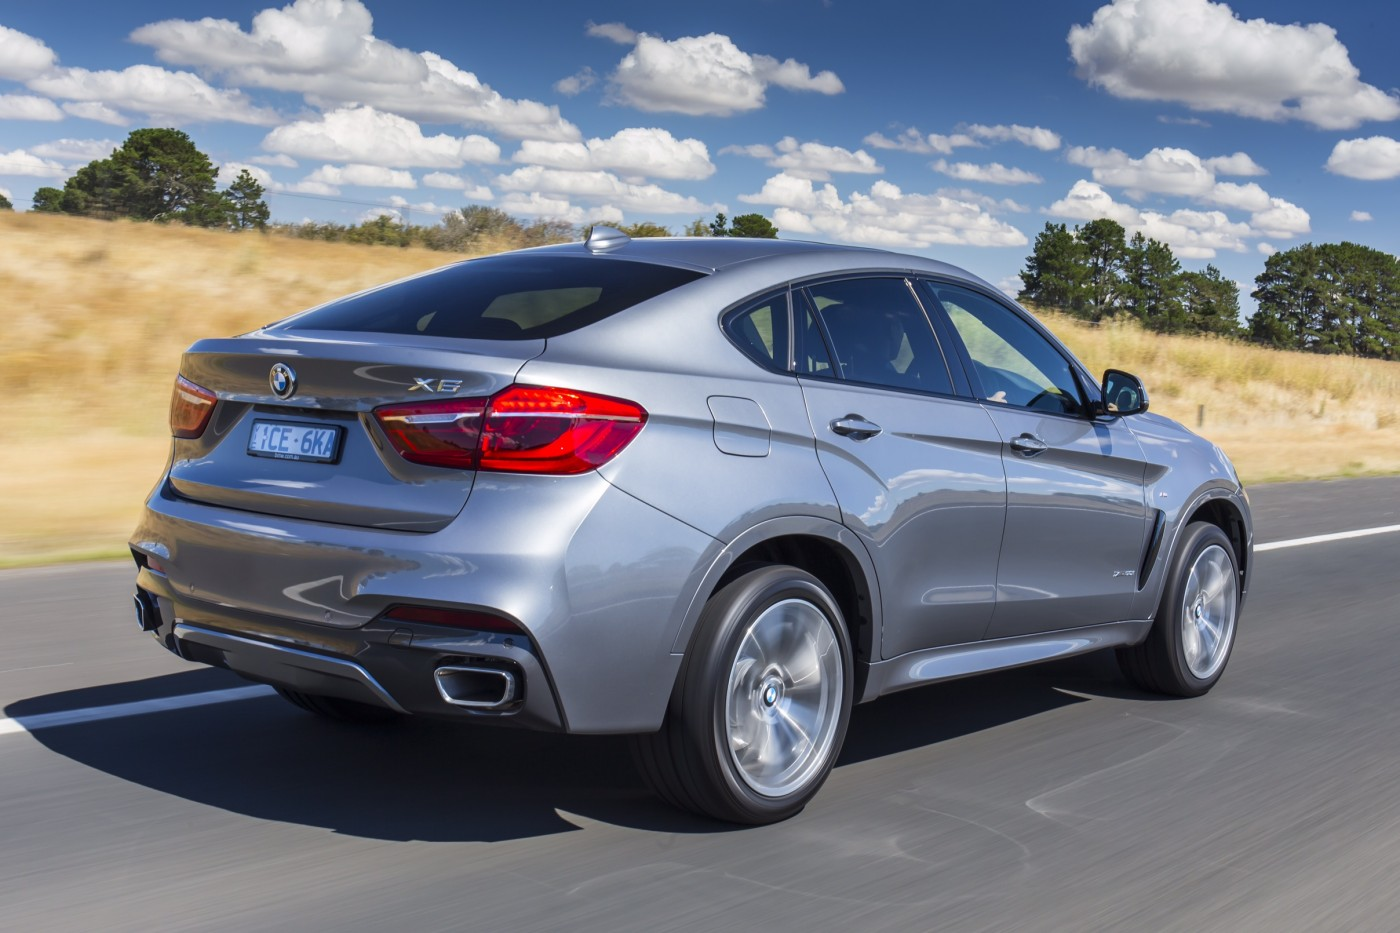 2015 Bmw X6 Xdrive30d Review Practical Motoring